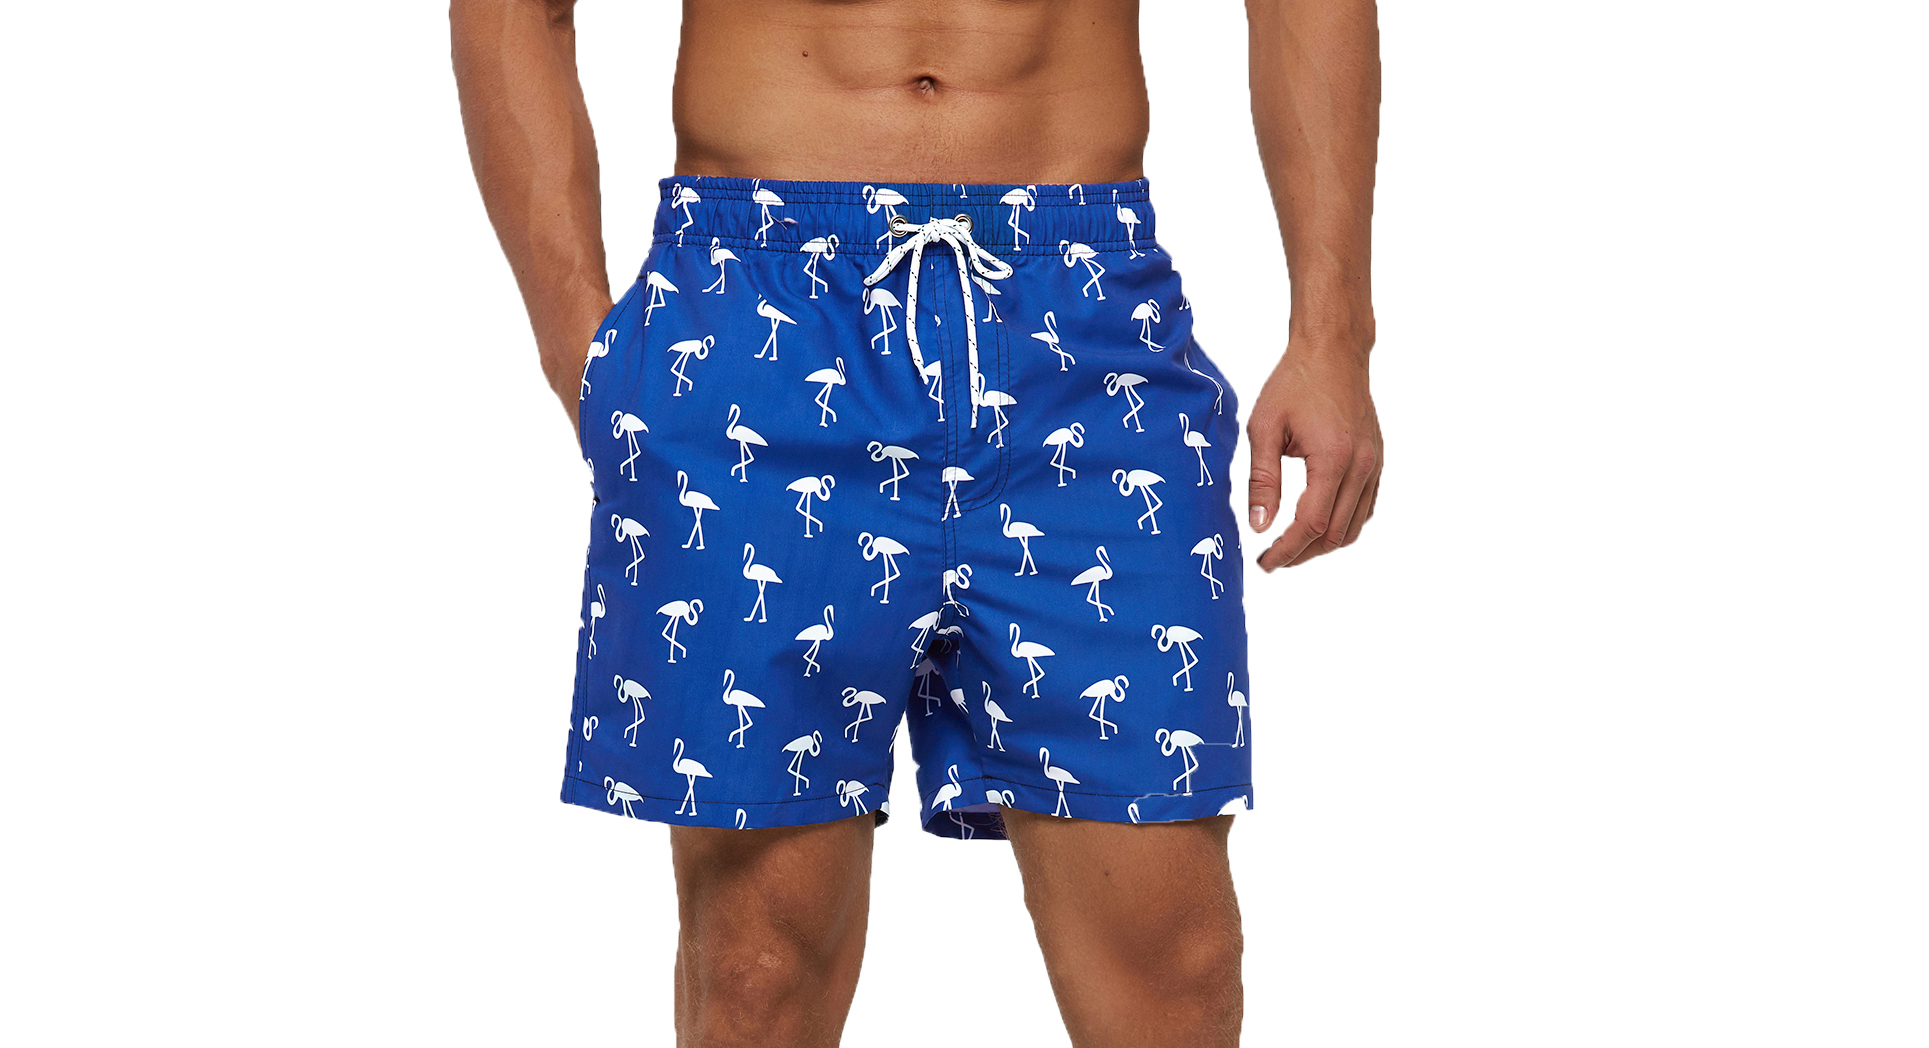 SILKWORLD Men's Swim Trunks Quick Dry Athletic Swimwear Shorts with Mesh Lining and Pockets